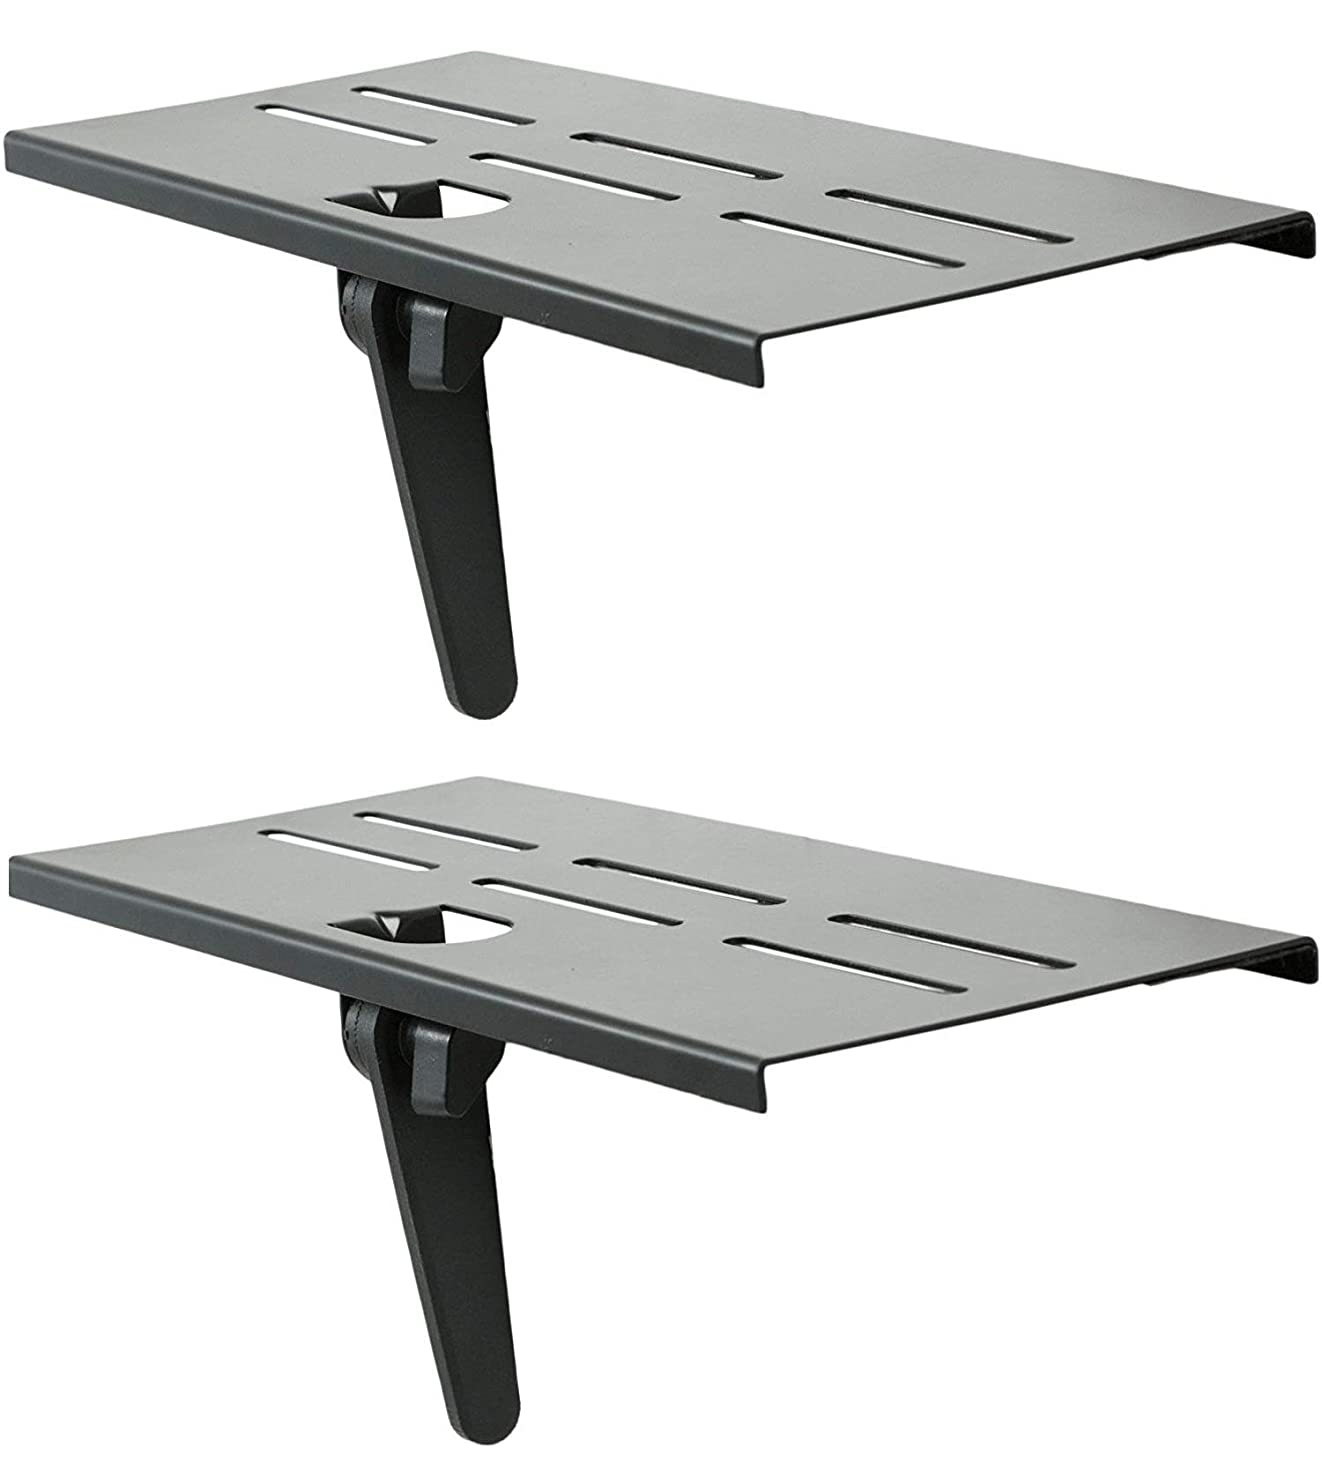 Mount Plus MP-APM-05-01 Top Shelf TV Mounting Bracket 12-inch Wide Platform | Holds Speaker, Streaming Device, Game Console, and More (2 Pack)